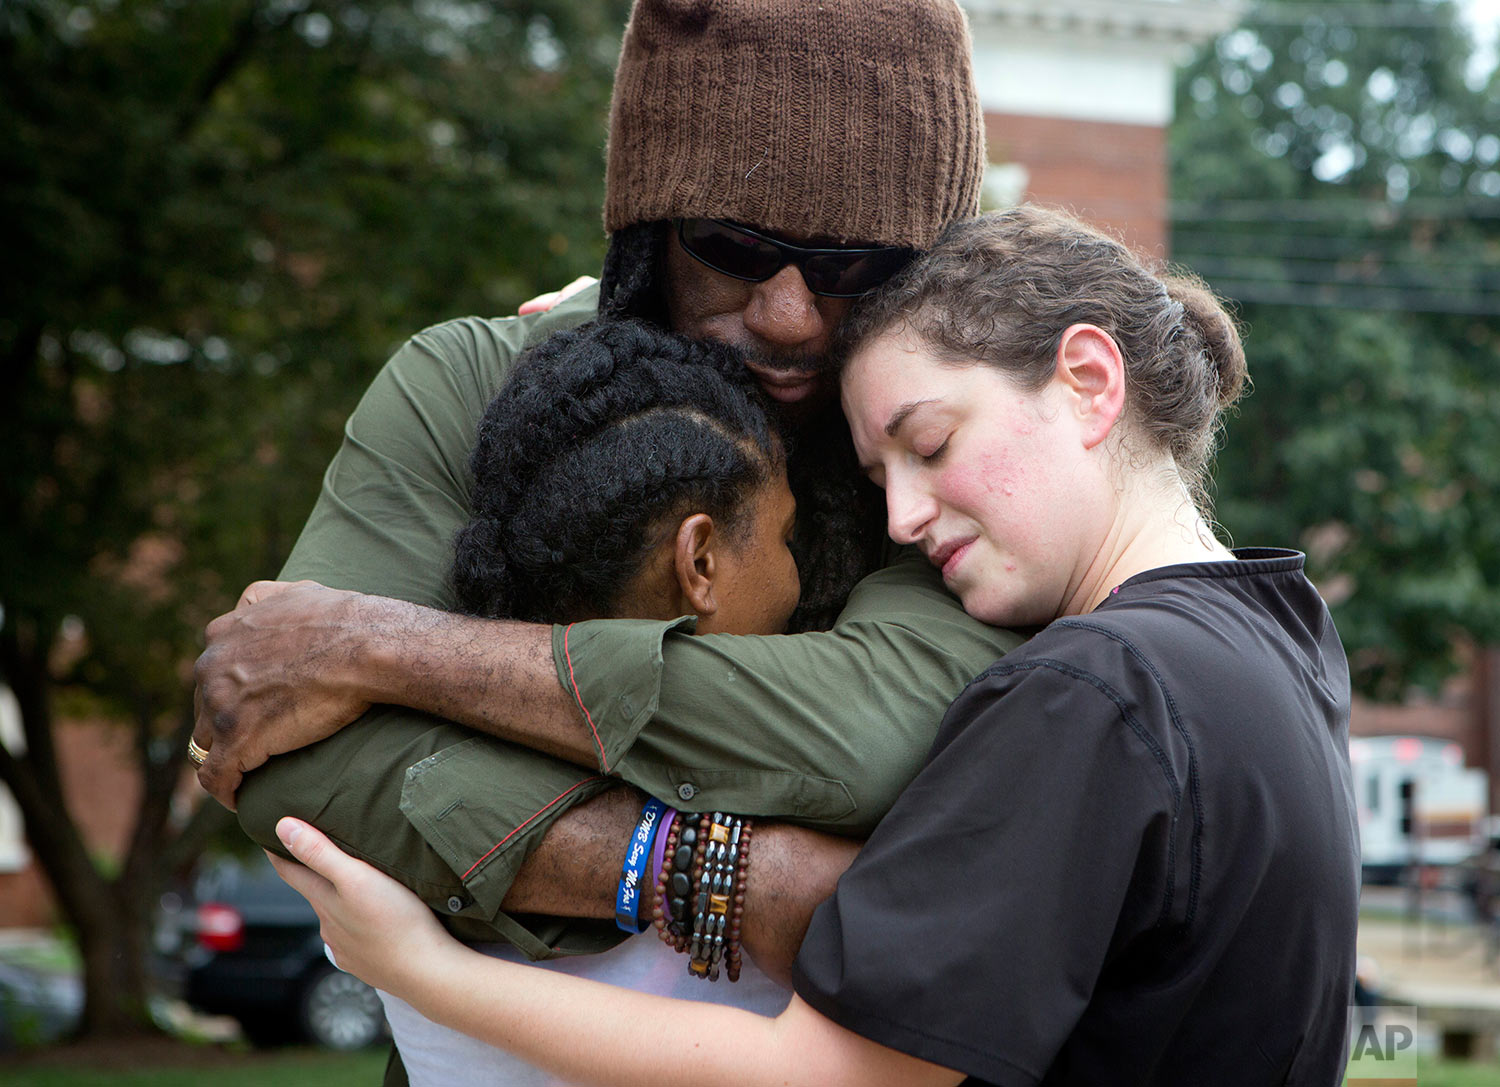 Aaliyah Jones, 38, left, hugs Boyd Tinsley, of the Dave Matthews Band and Amy Hastings, 29, all of Charlottesville, at the base of the Confederate General Robert E. Lee monument in Emancipation Park Tuesday, Aug. 15, 2017, in Charlottesville, Va. The deadly rally by white nationalists in Charlottesville, over the weekend is accelerating the removal of Confederate statues in cities across the nation. (AP Photo/Julia Rendleman)